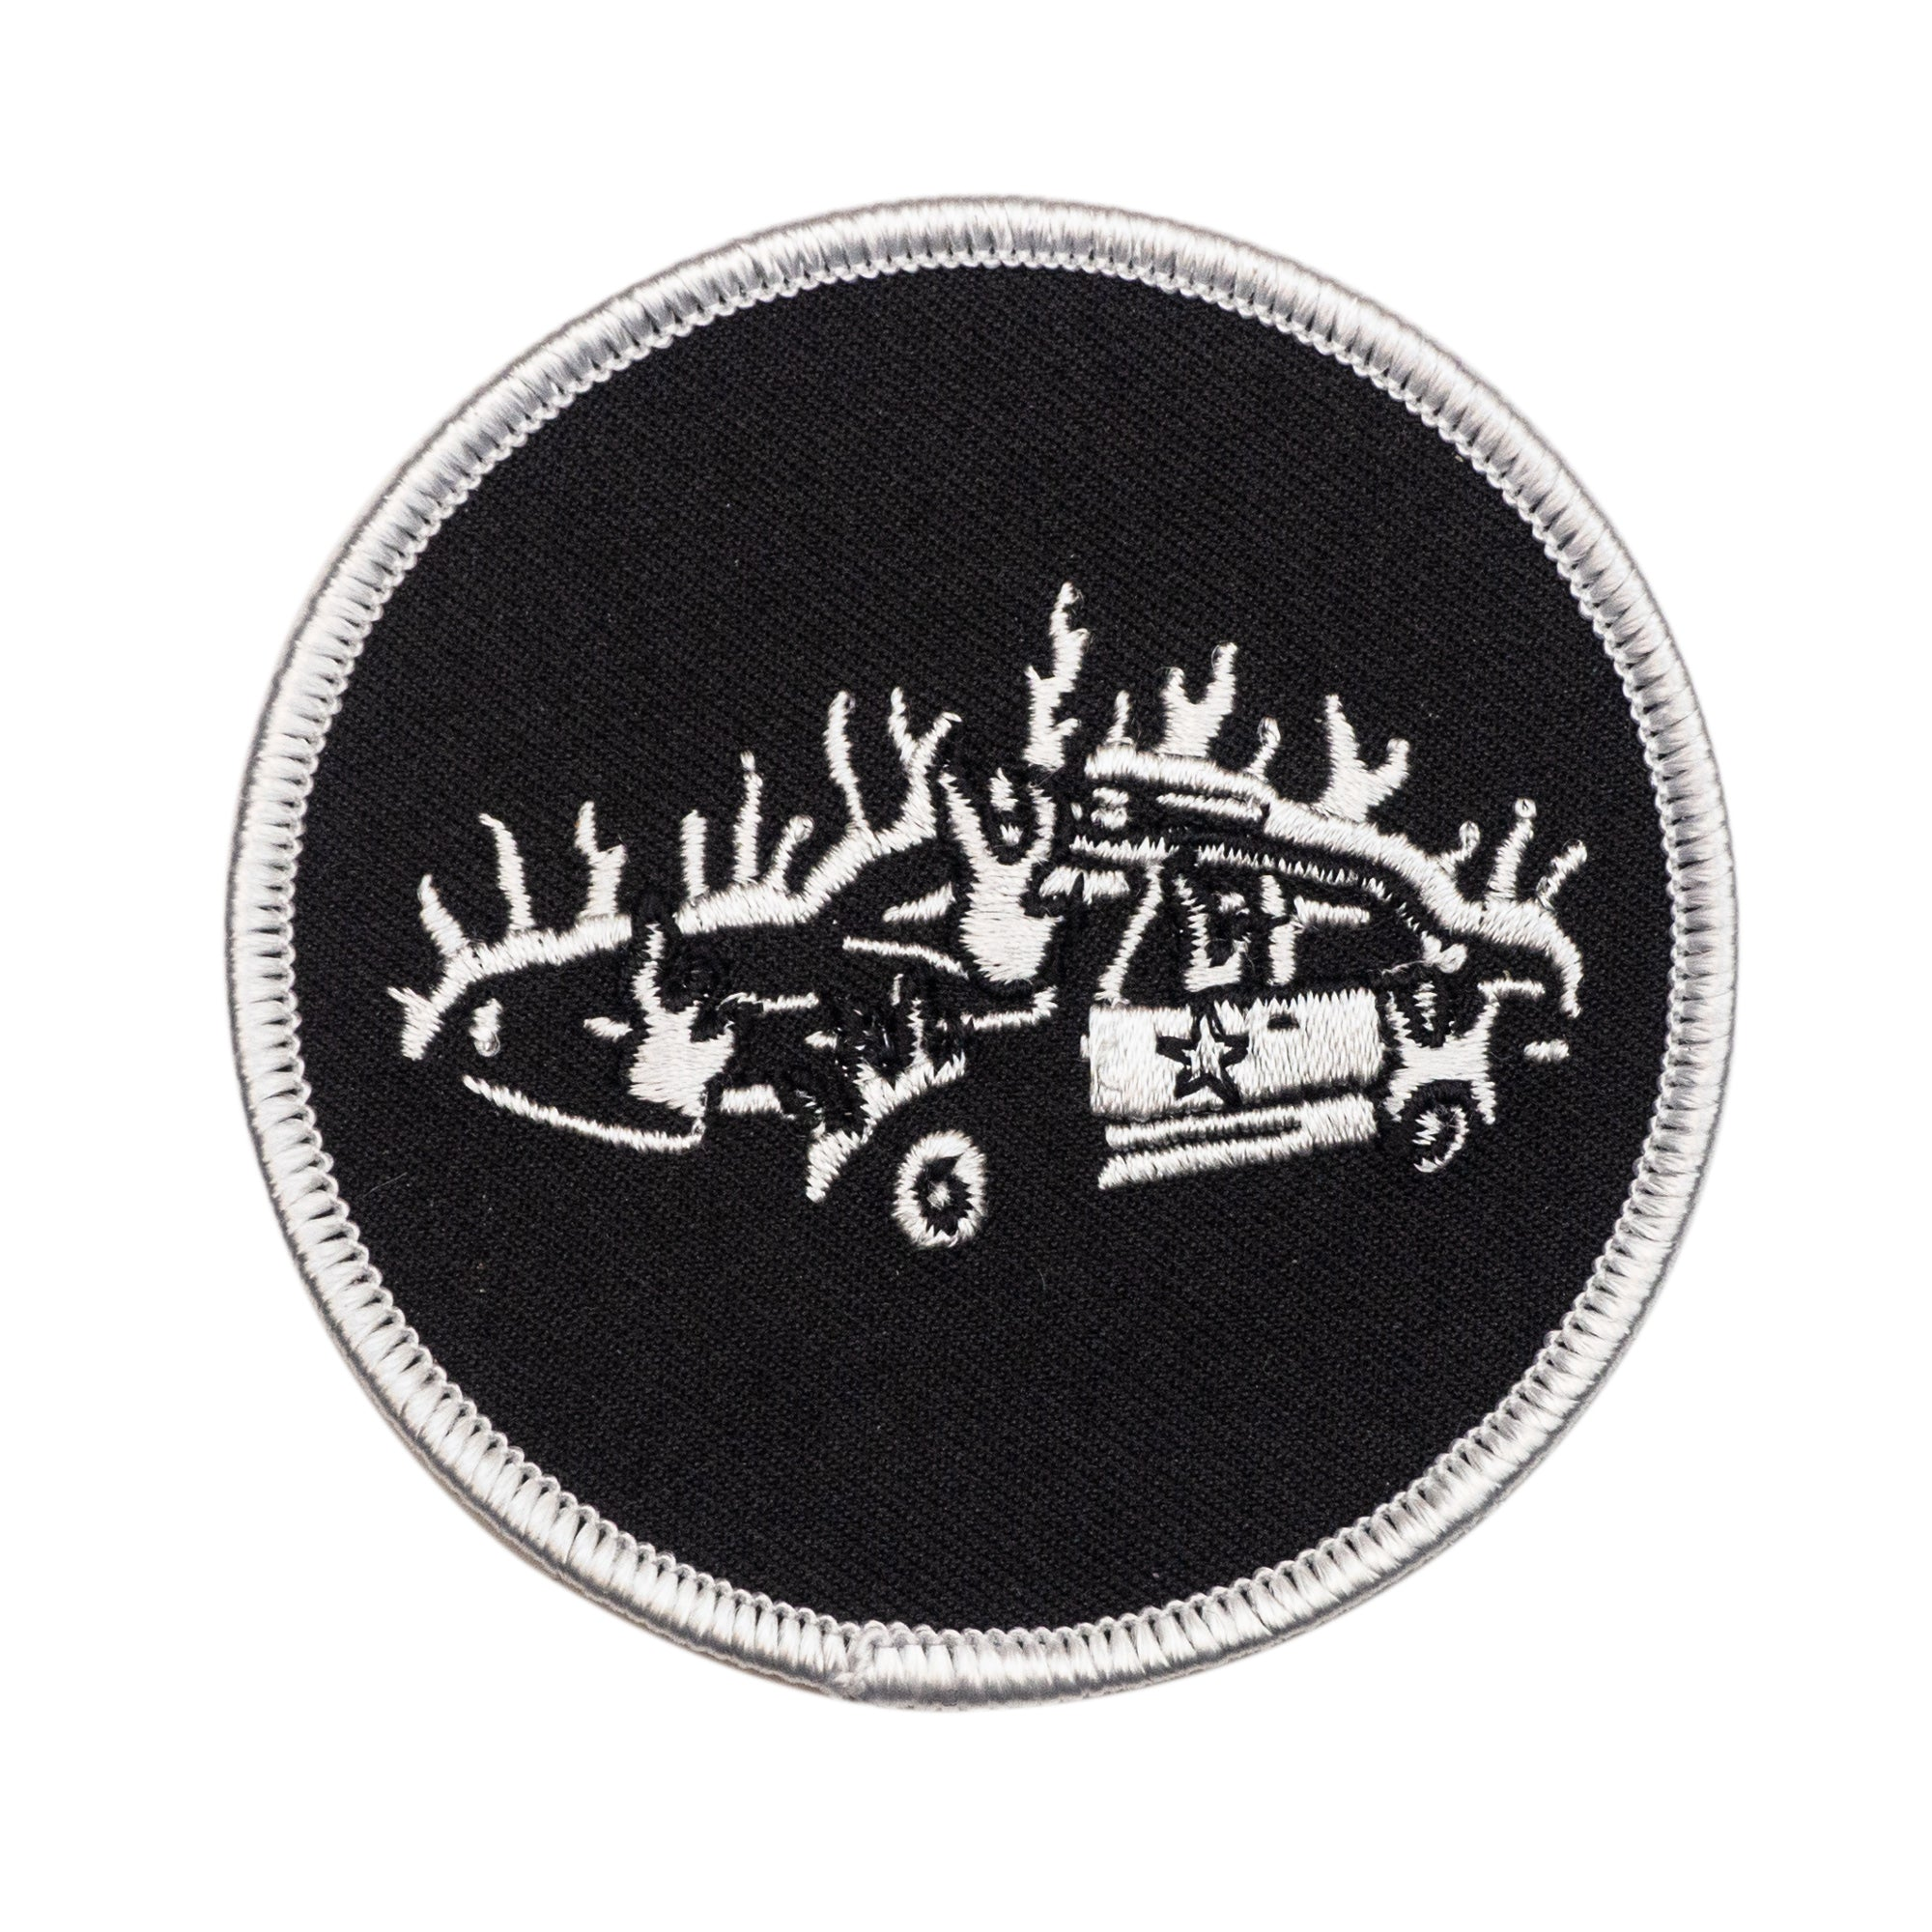 Burning Cop Car Patch